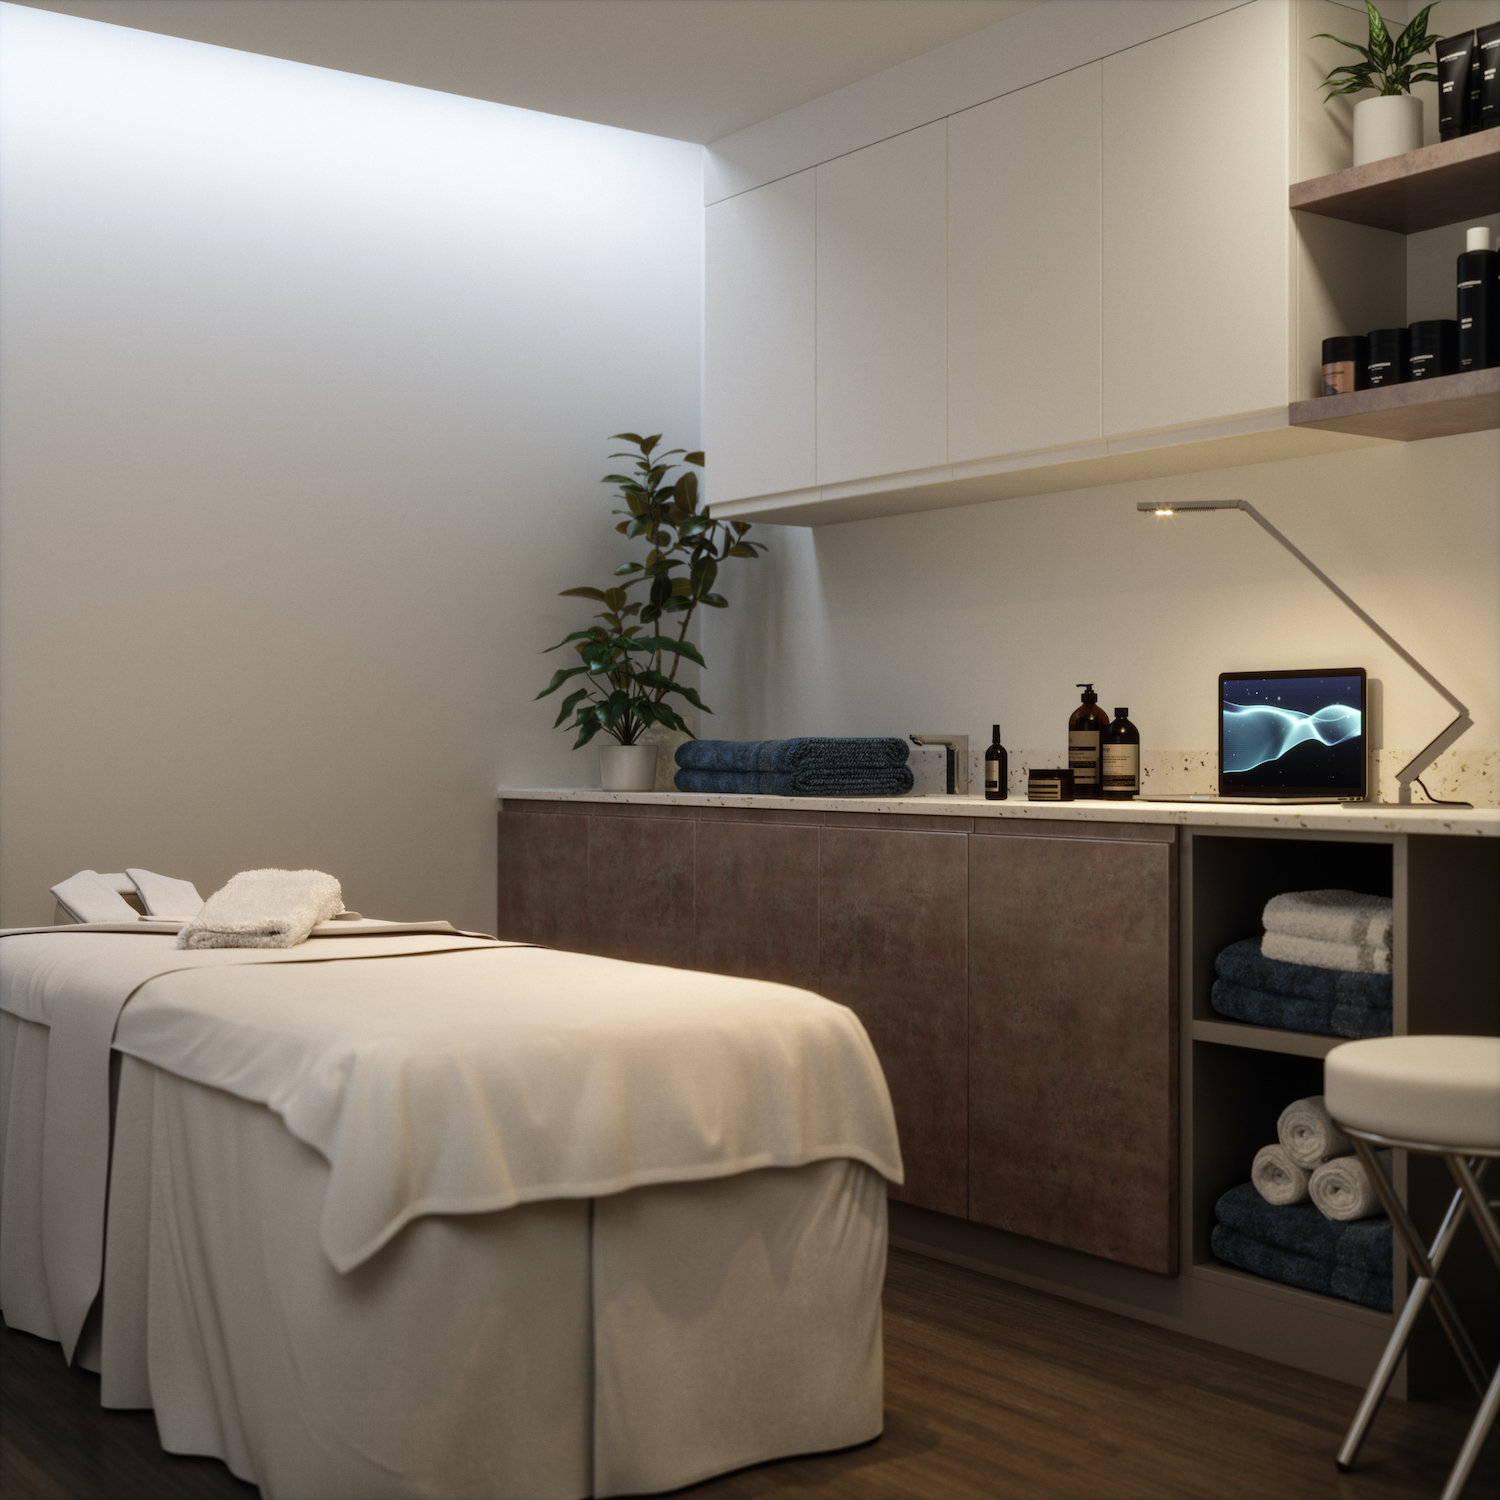 Specialist treatment rooms